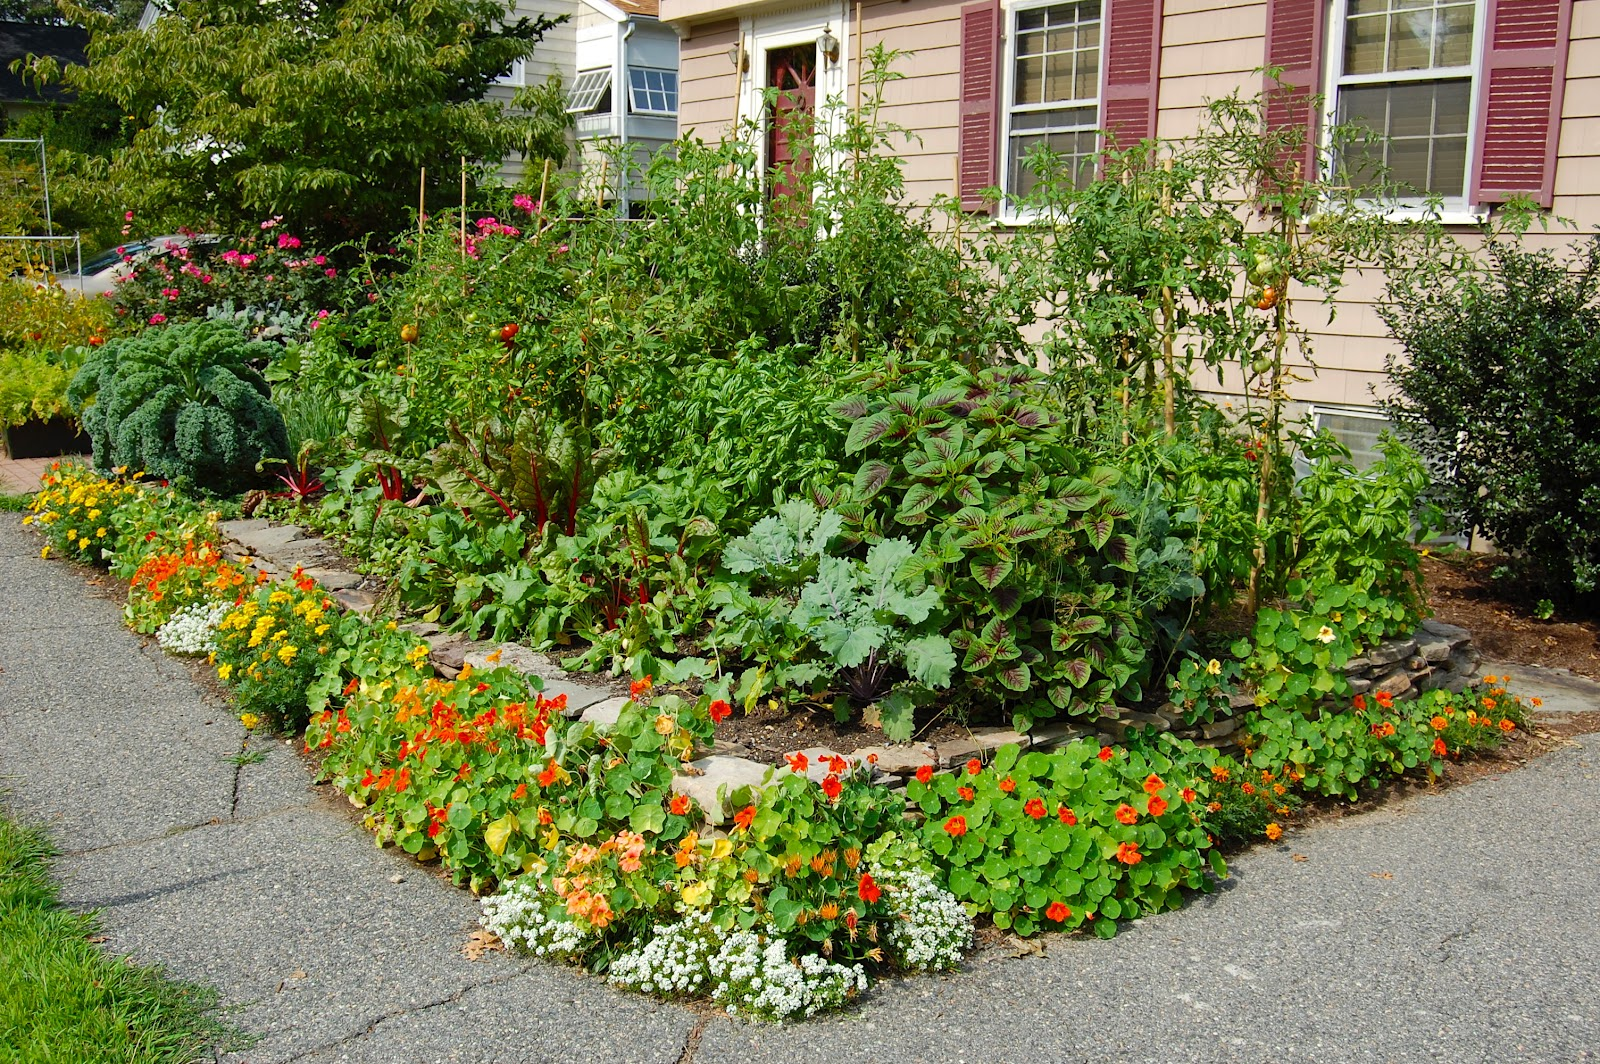 landscaping landscaping ideas for front yard edible gardens landscaping landscaping ideas for front yard edible gardens to design a vegetable